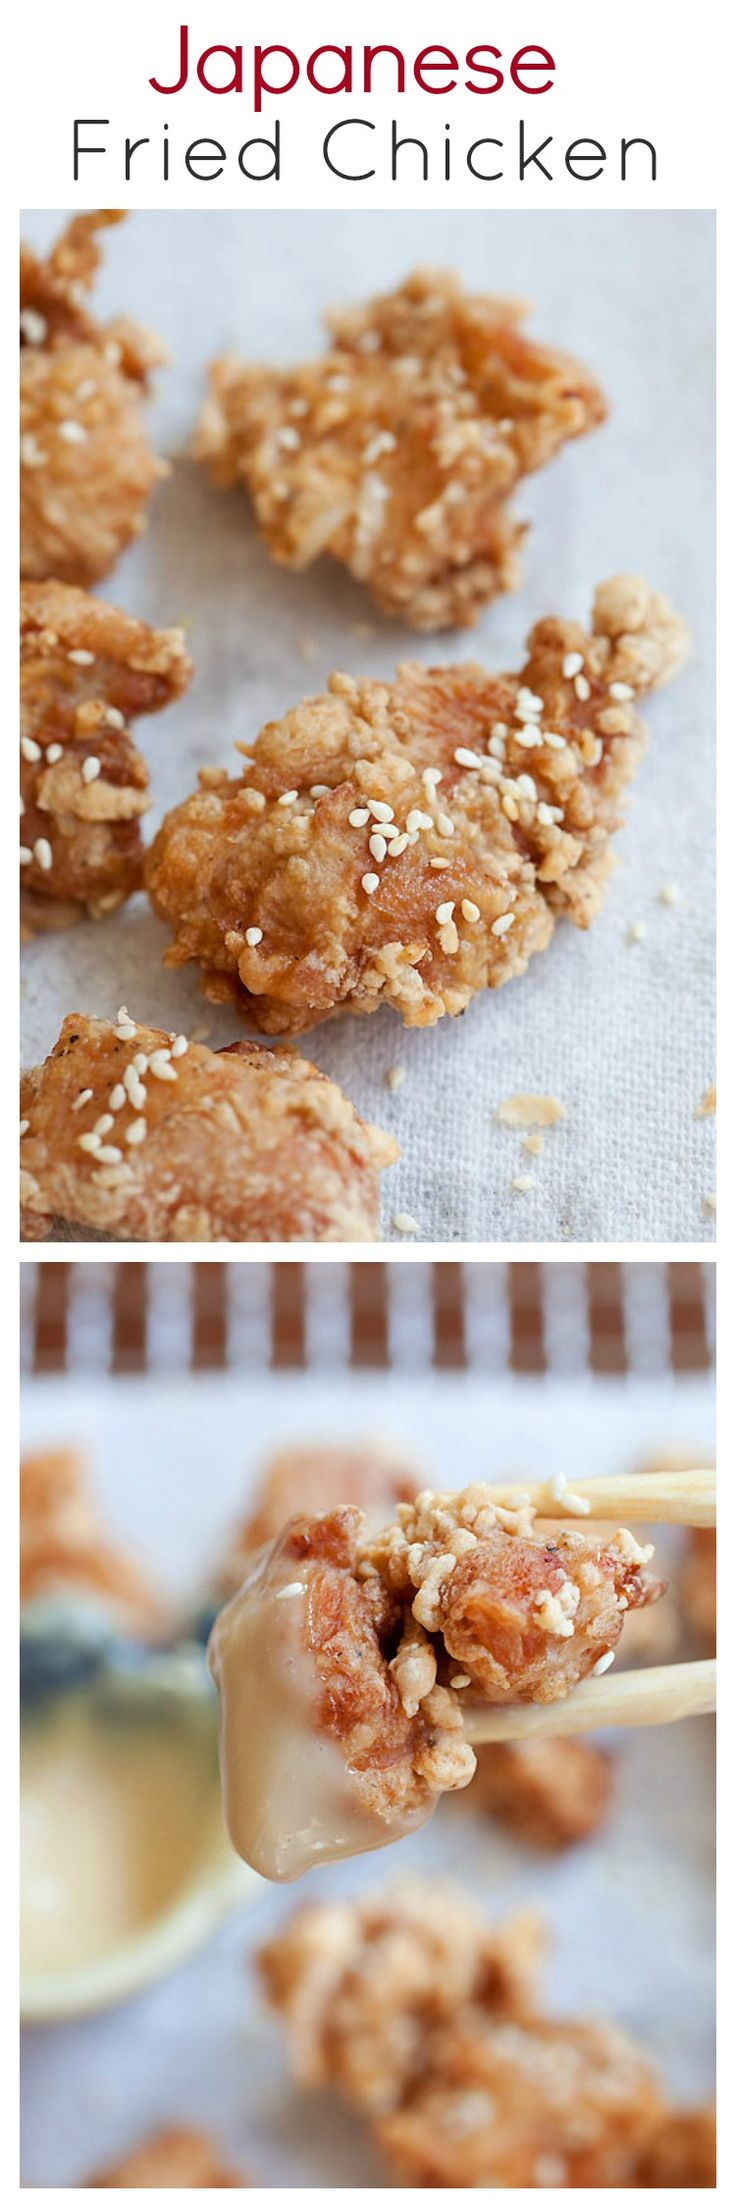 ... , juicy, and CRAZY DELICIOUS Japanese fried chicken recipe, with